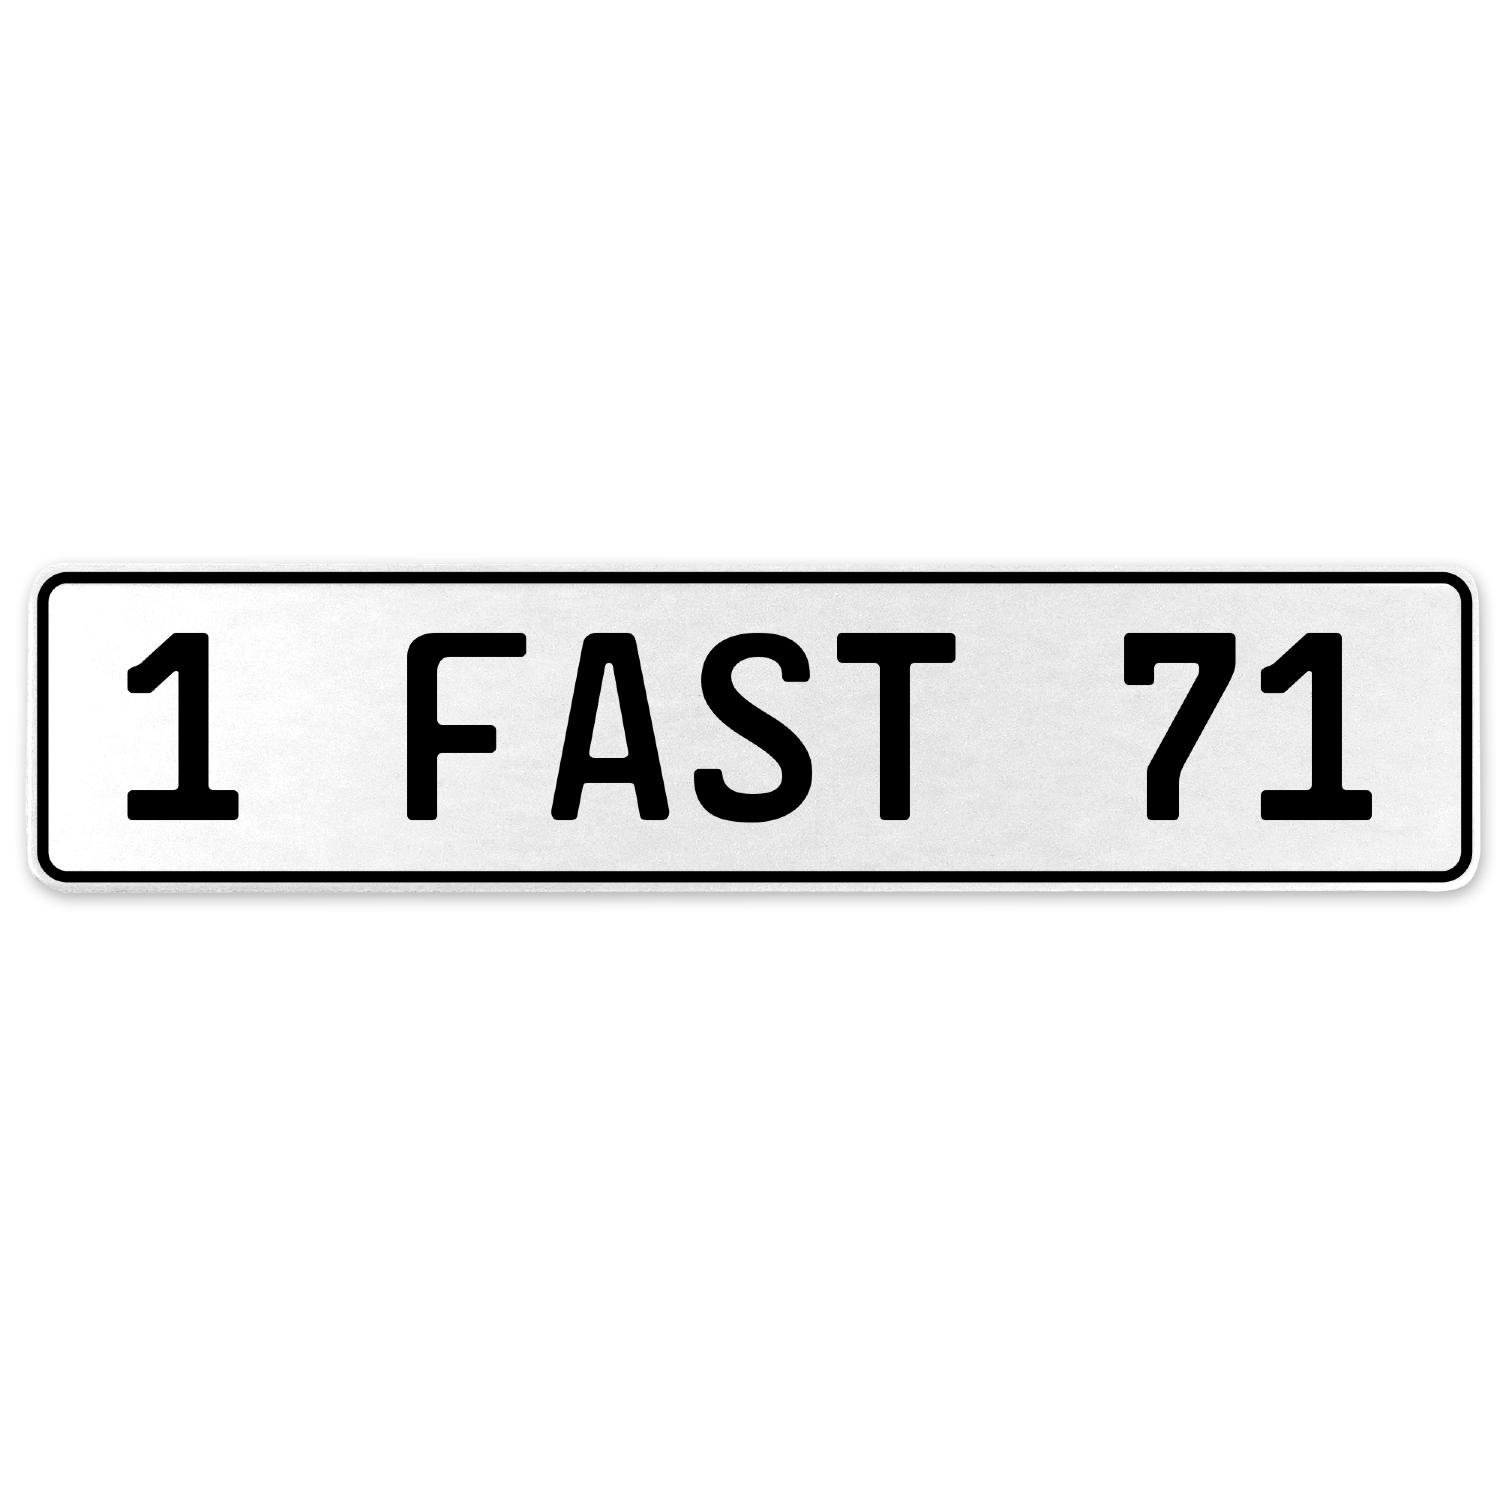 Vintage Parts 557440 1 Fast 71 White Stamped Aluminum European License Plate